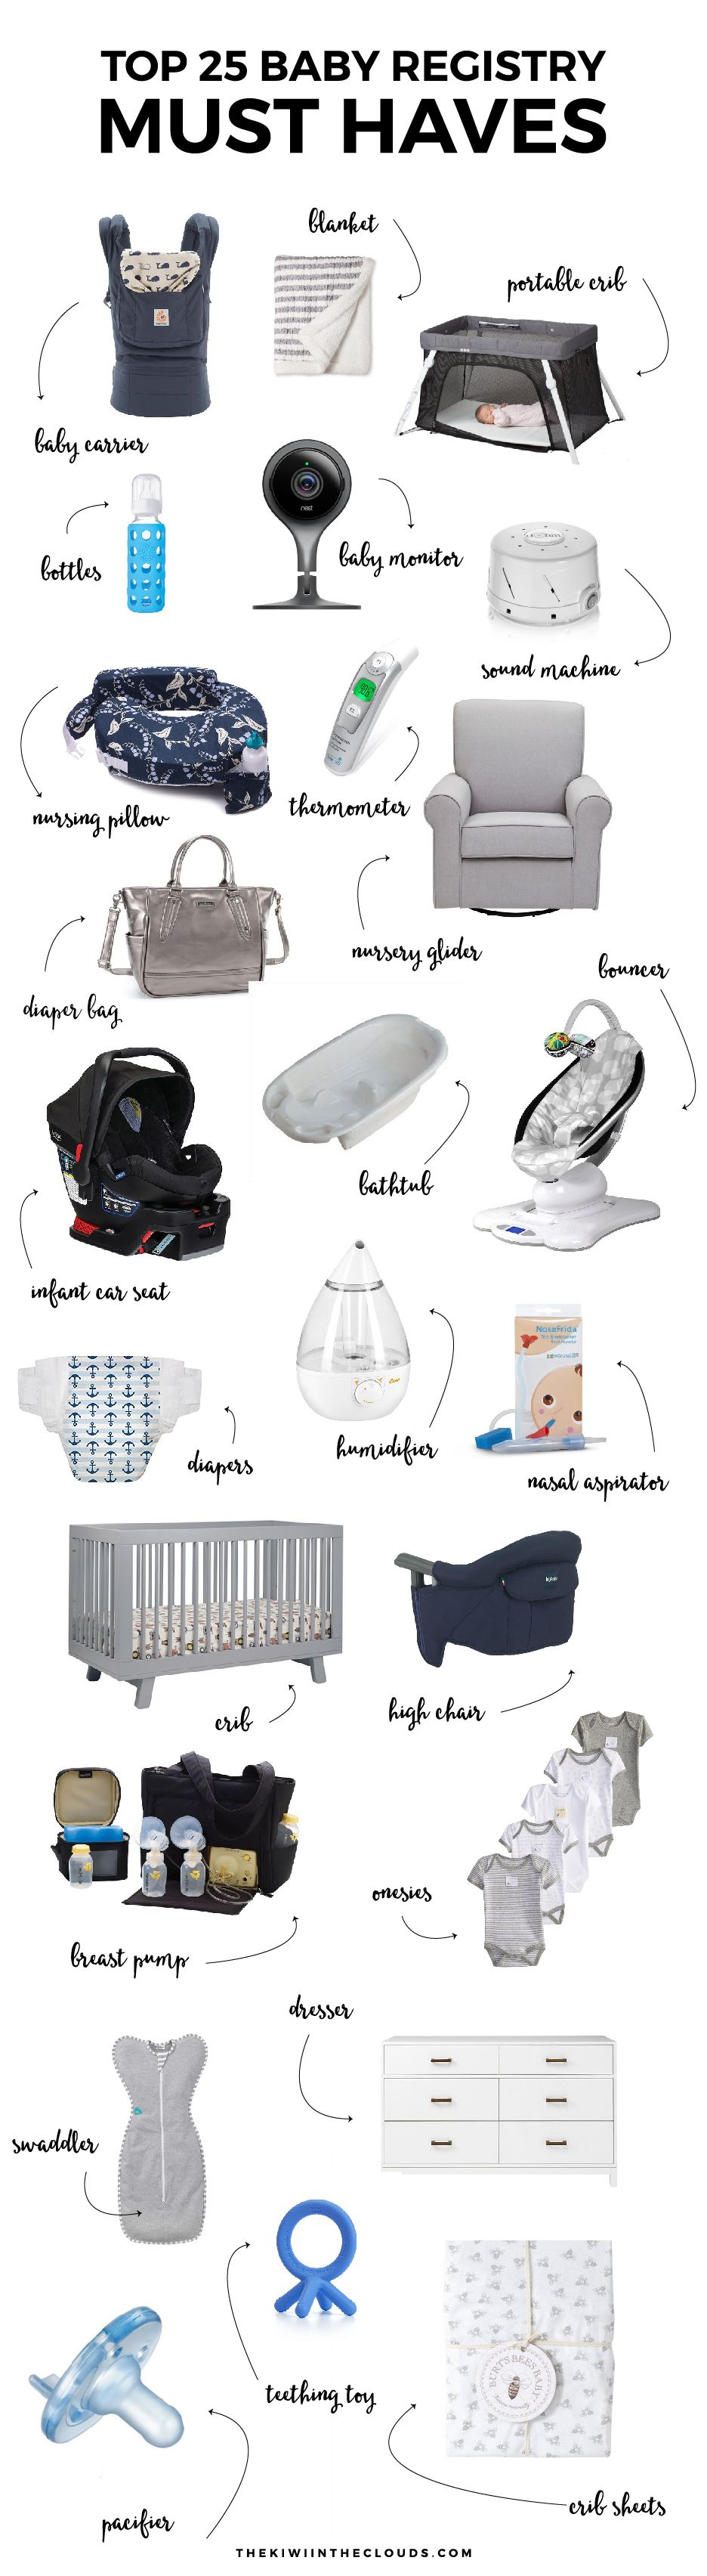 How To Find The Best Nursery Glider For Your Bud